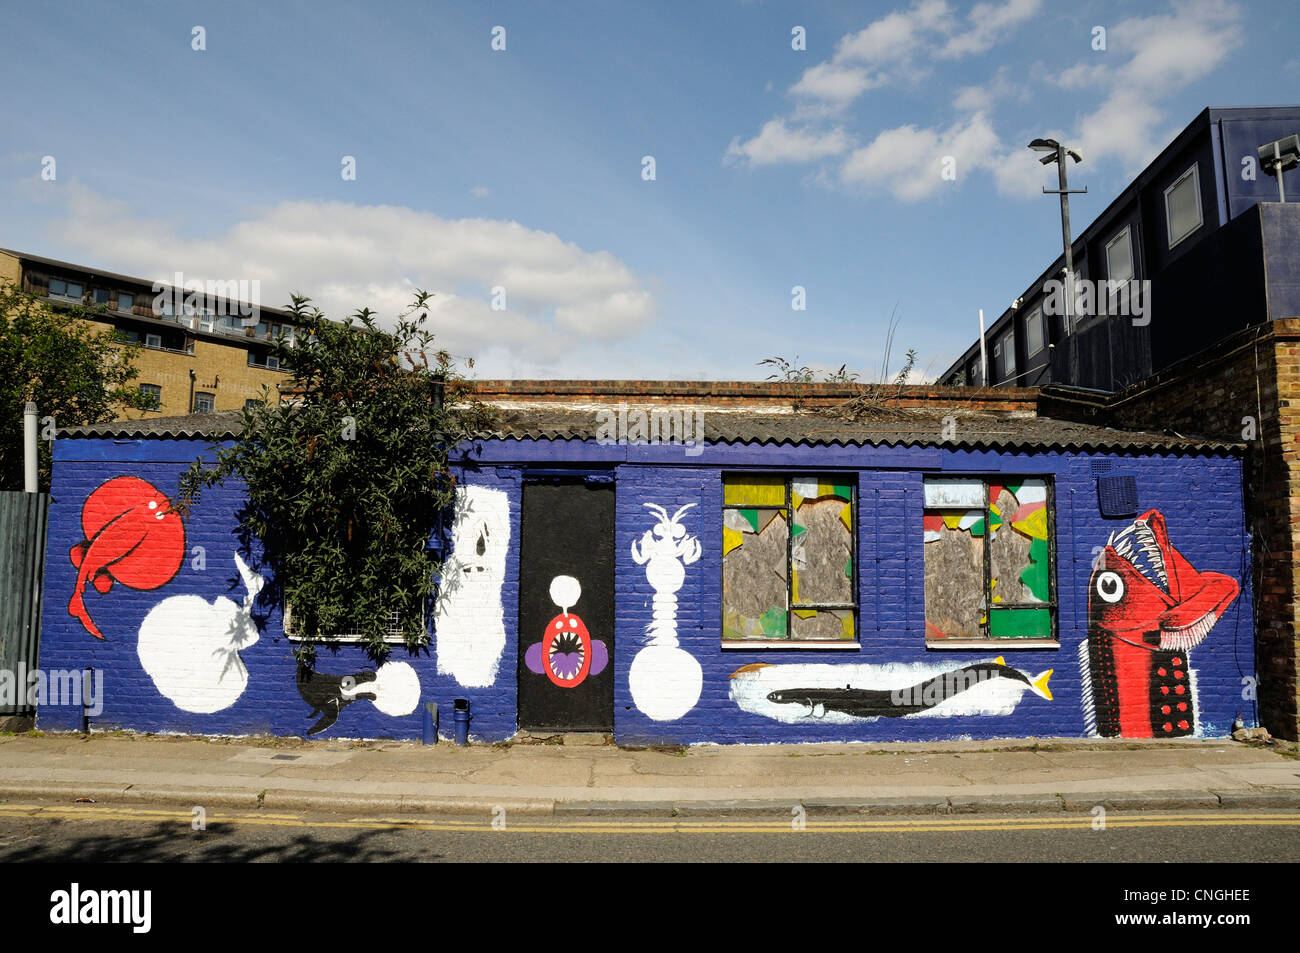 Graffiti on the front of an old single story building, Orchard Place, Blackwall Leamouth Poplar Tower Hamlets East - Stock Image